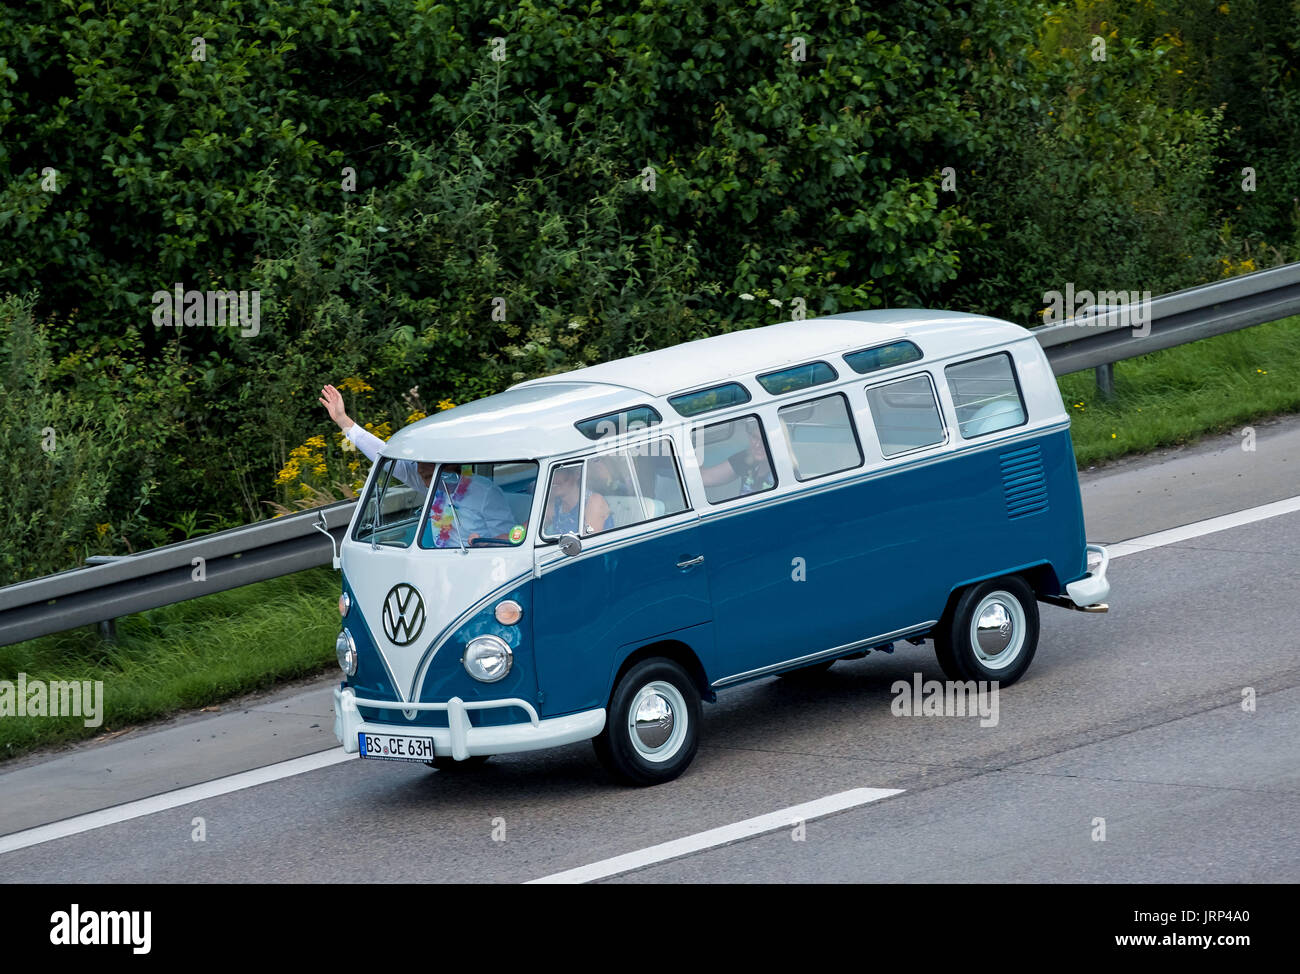 Stocken, Germany. 06th Aug, 2017. An old VW Kombi driving to the Volkswagen Commercial Vehicles Plant for the Kombi Meet on the occasion of the 70th anniversary of the Volkswagen Transporter in Stocken, Germany, 06 August 2017. Photo: Peter Steffen/dpa/Alamy Live News - Stock Image